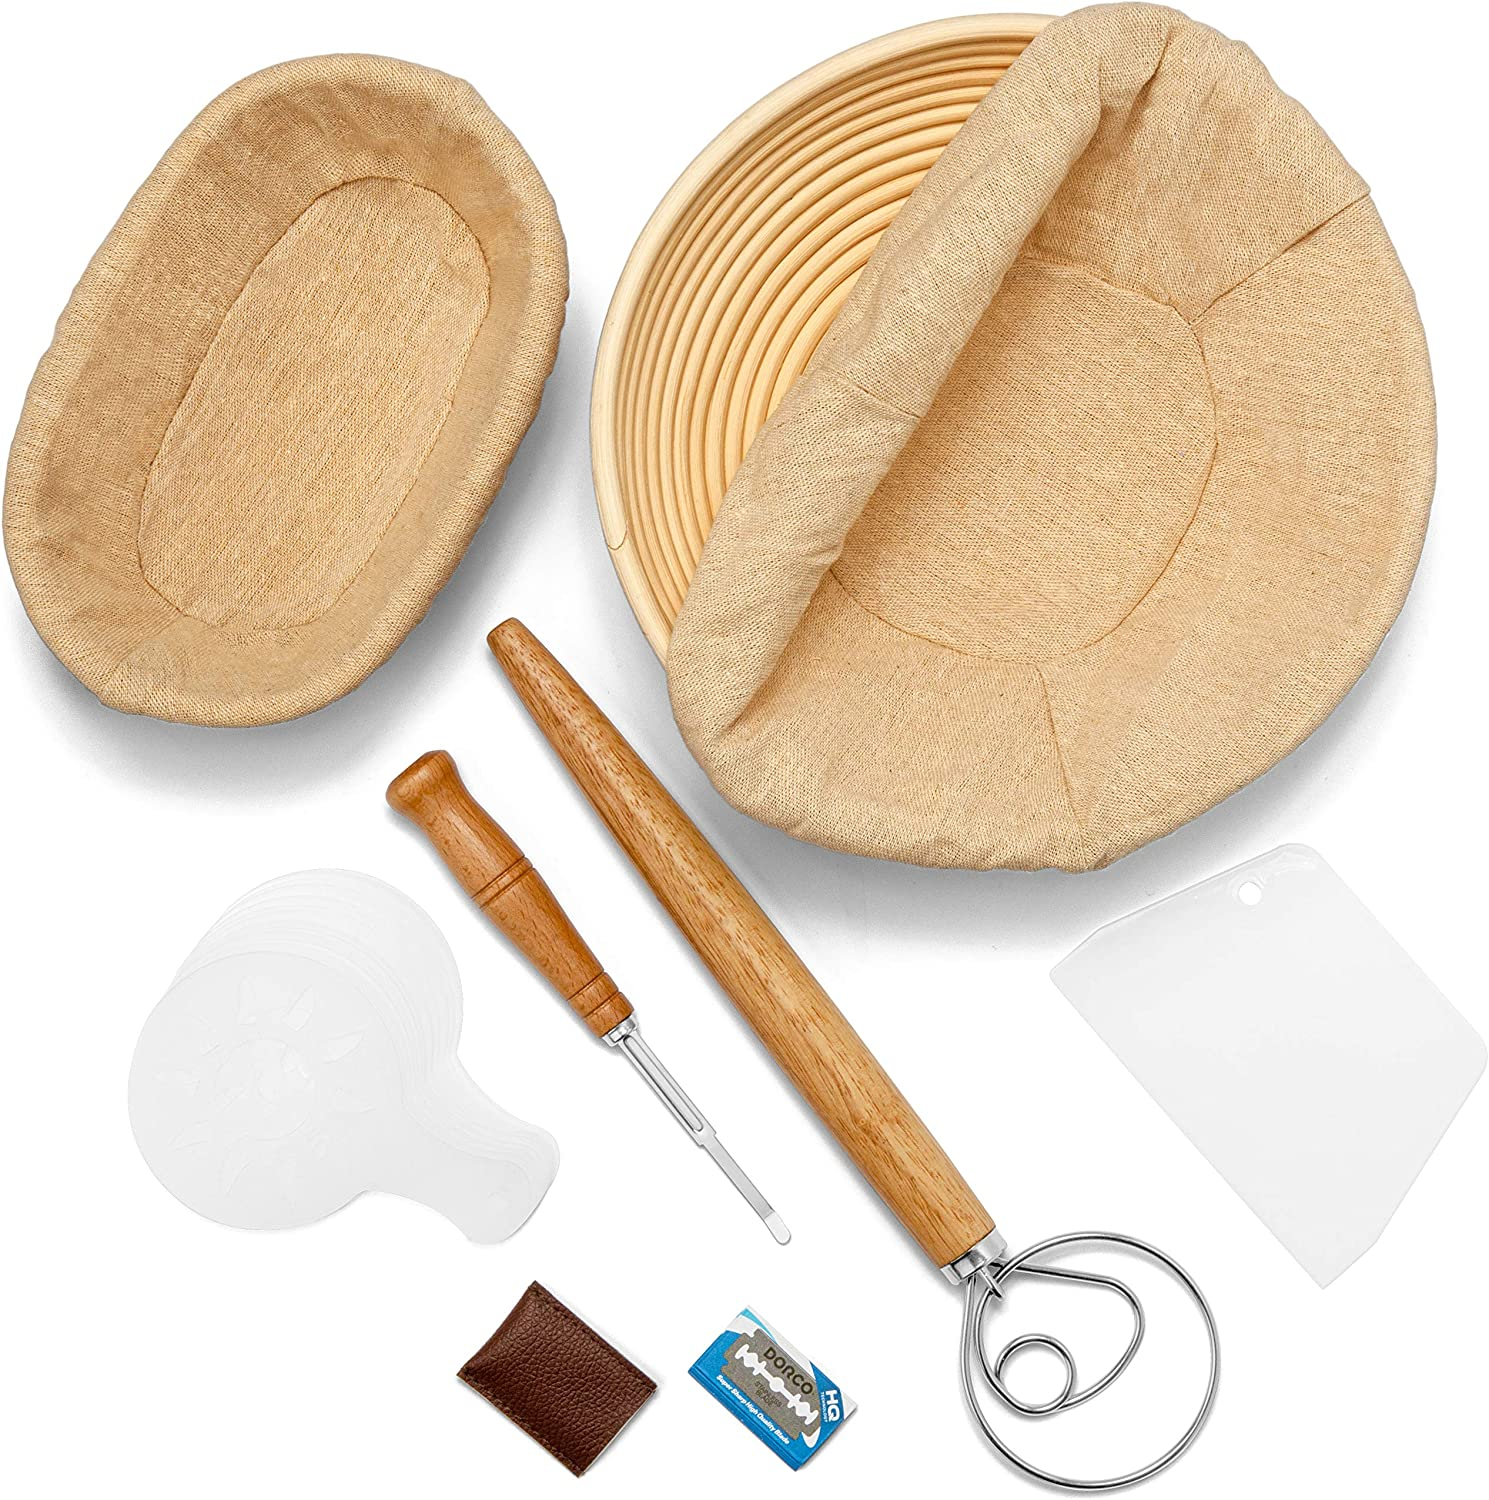 Limited time cheap sale Banneton Bread Proofing Basket Set of Round W + Oval Ranking TOP15 Dough 2